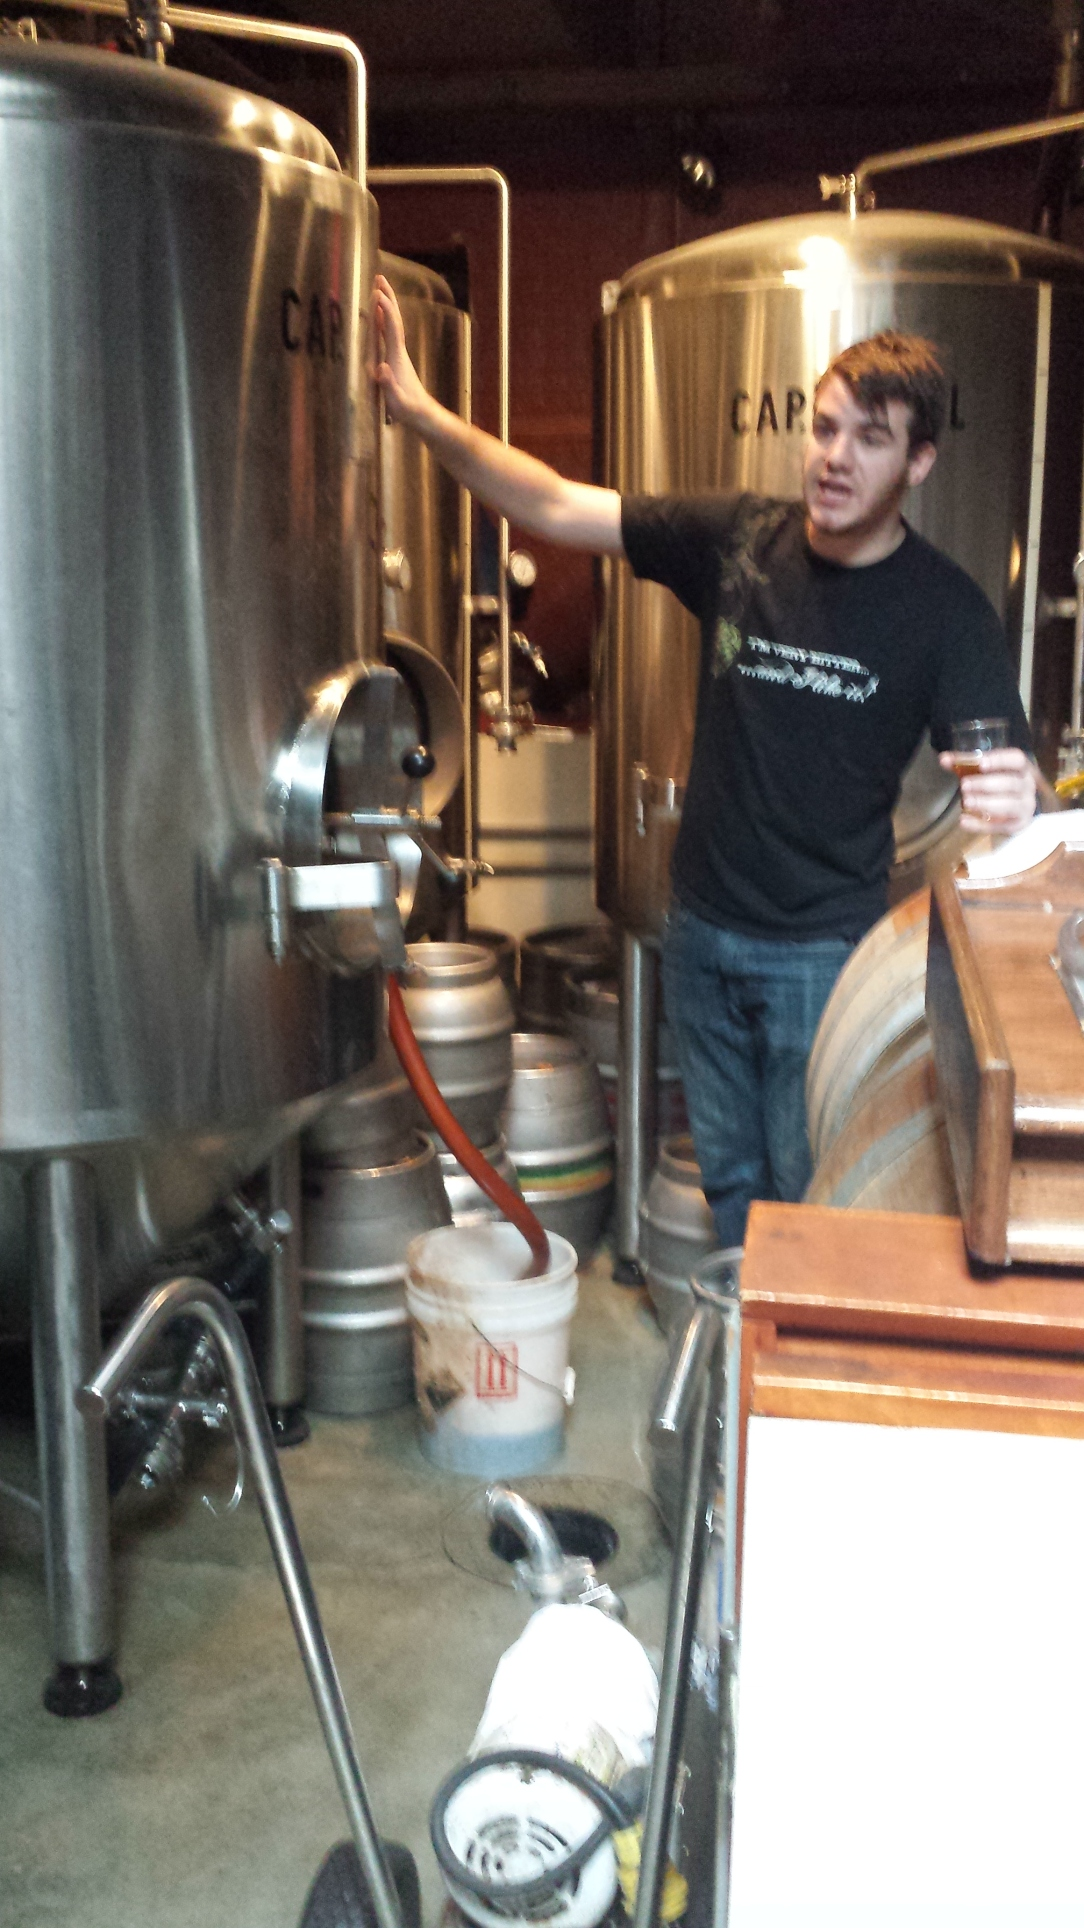 Matt explaining the brewing process to us.